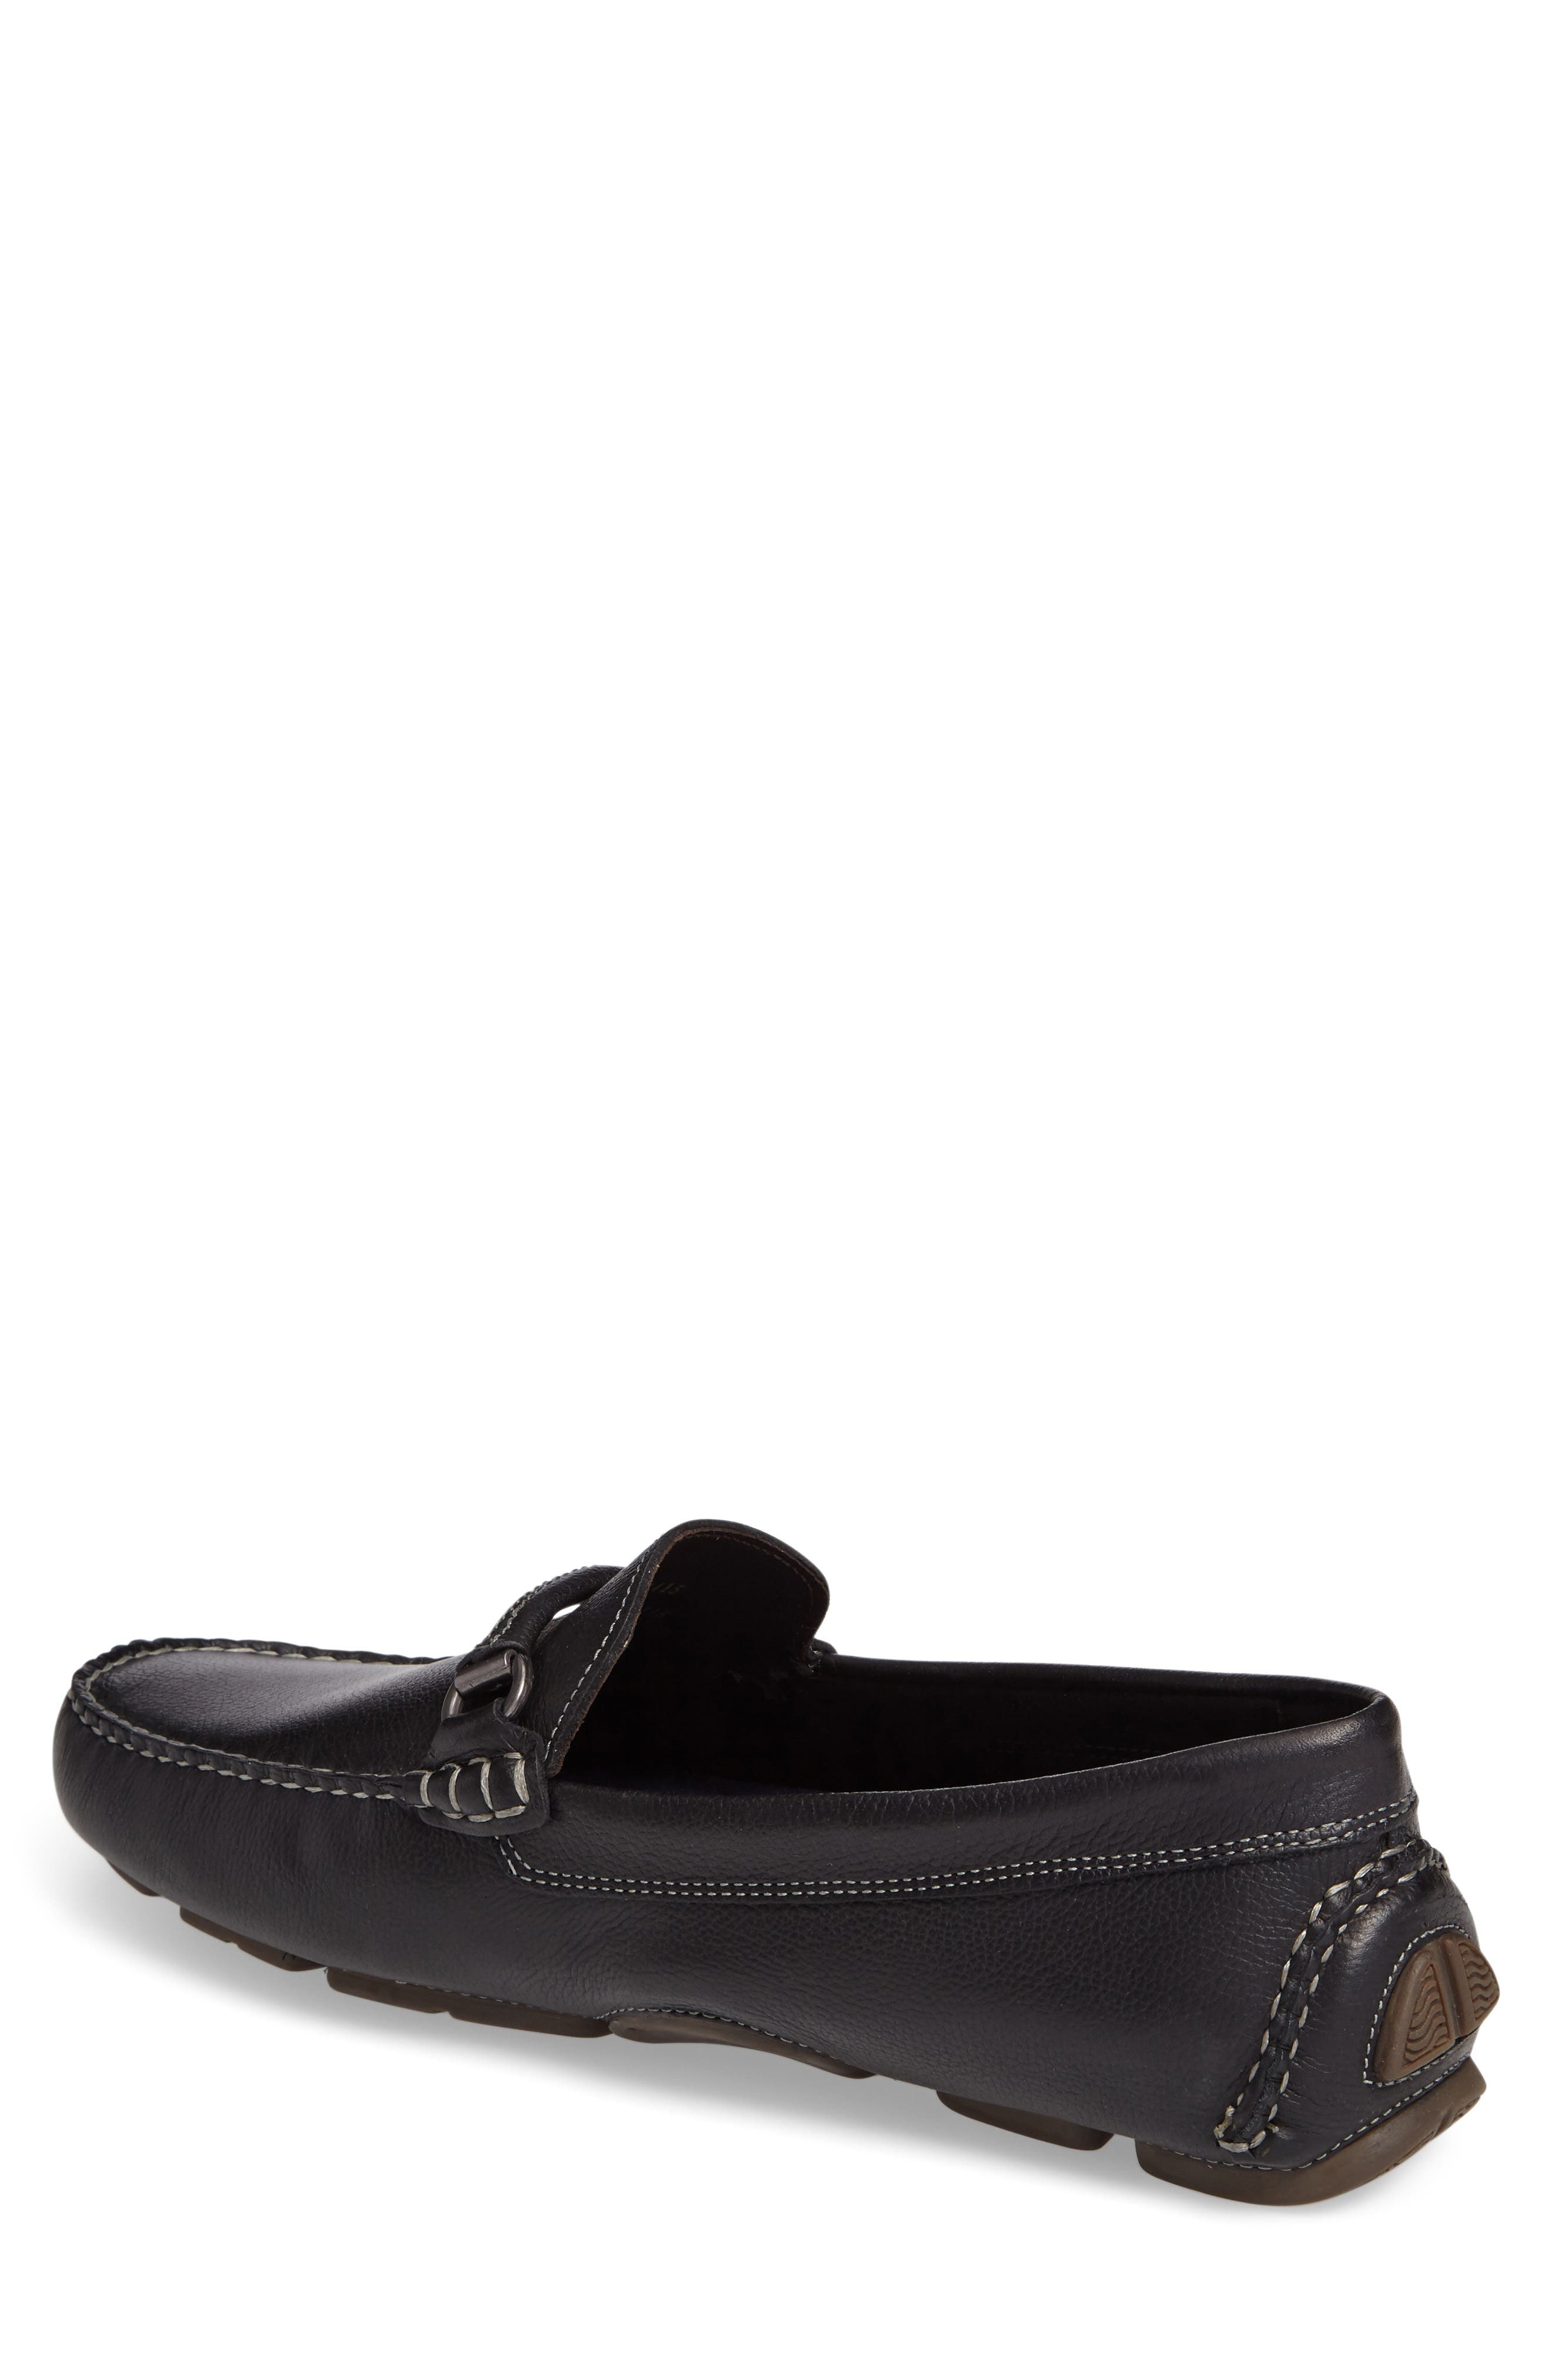 JOHNSTON & MURPHY, Gibson Bit Driving Loafer, Alternate thumbnail 2, color, BLACK LEATHER